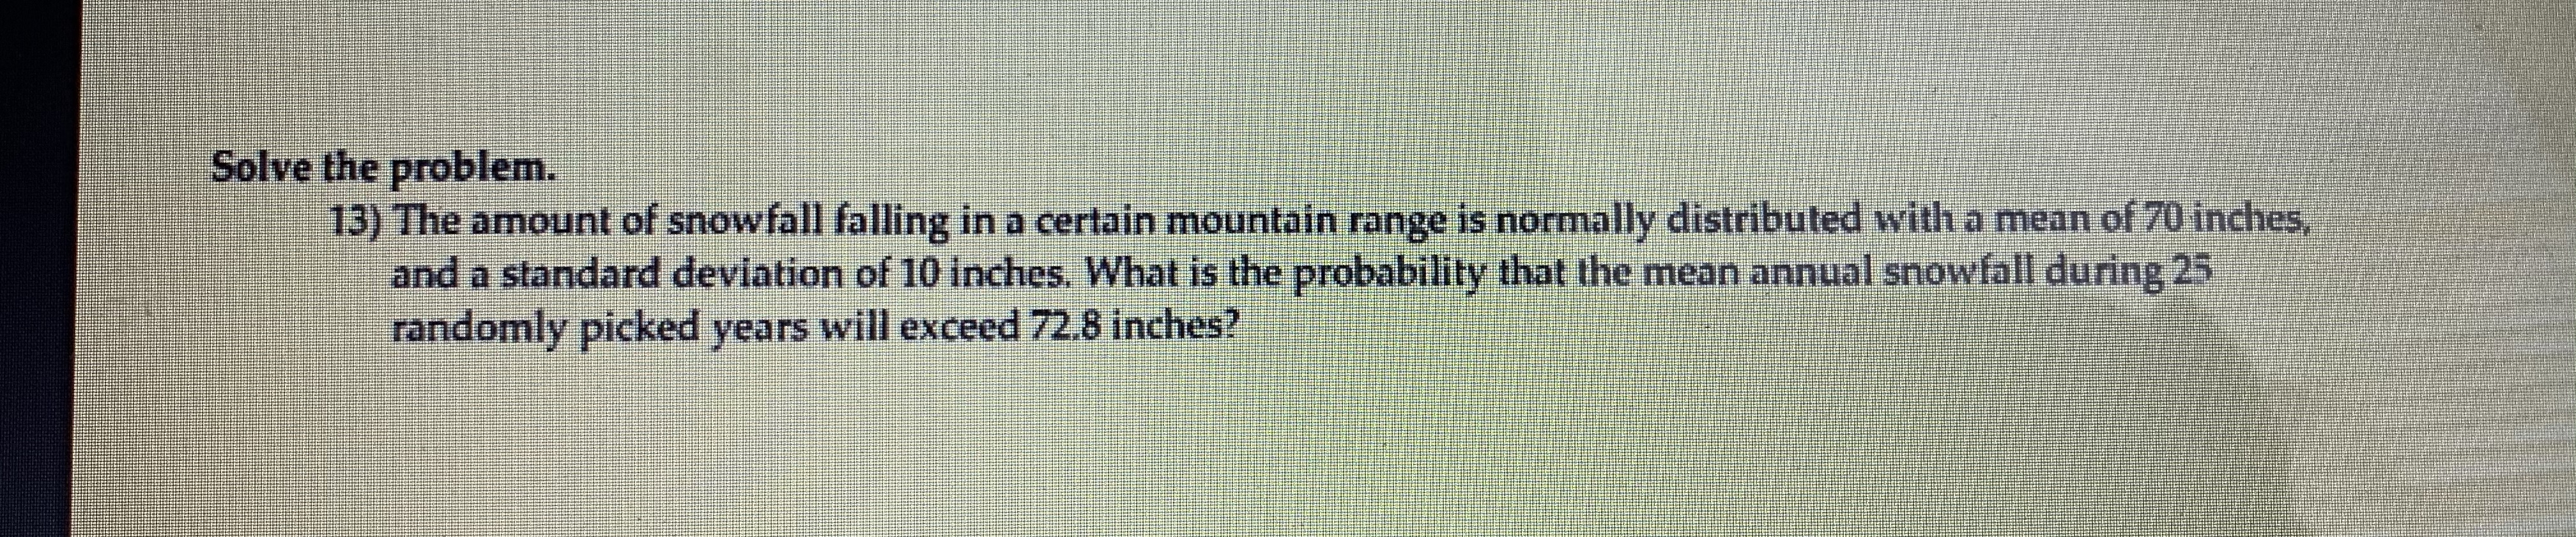 Solve the problem. 13) The amount of snowfall falling in a certain mountain range is normally distributed with a mean of 70 inches, and a standard deviation of 10 inches. What is the probability that the mean annual snowfall during 25 randomly picked years will exceed 72.8 inches?